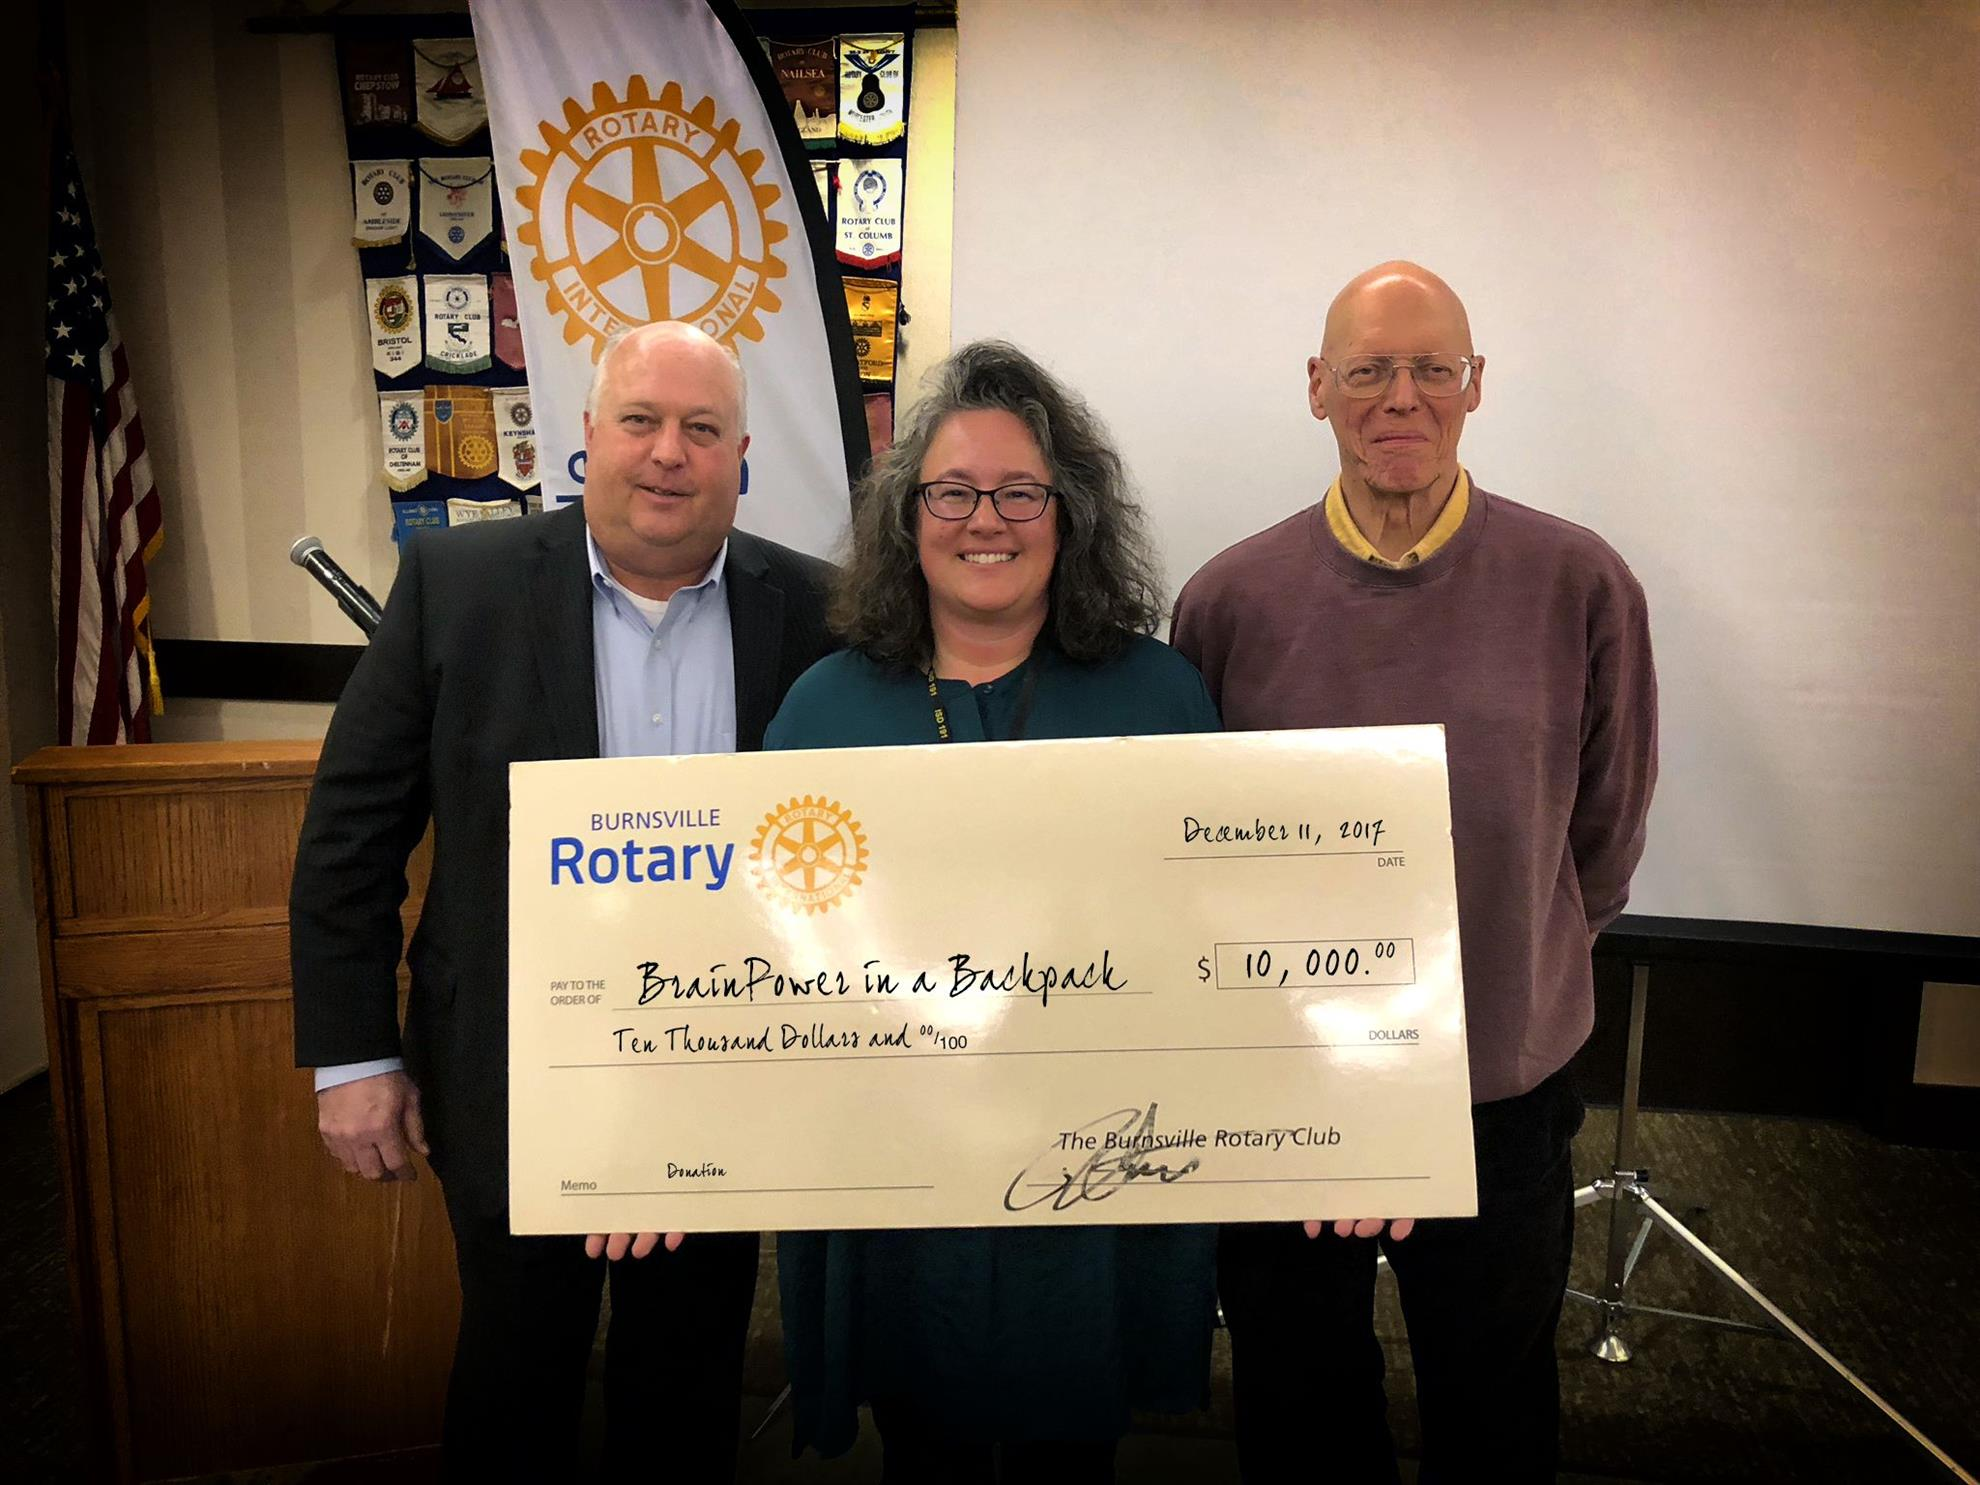 Brain Power in a Backpack check presentation